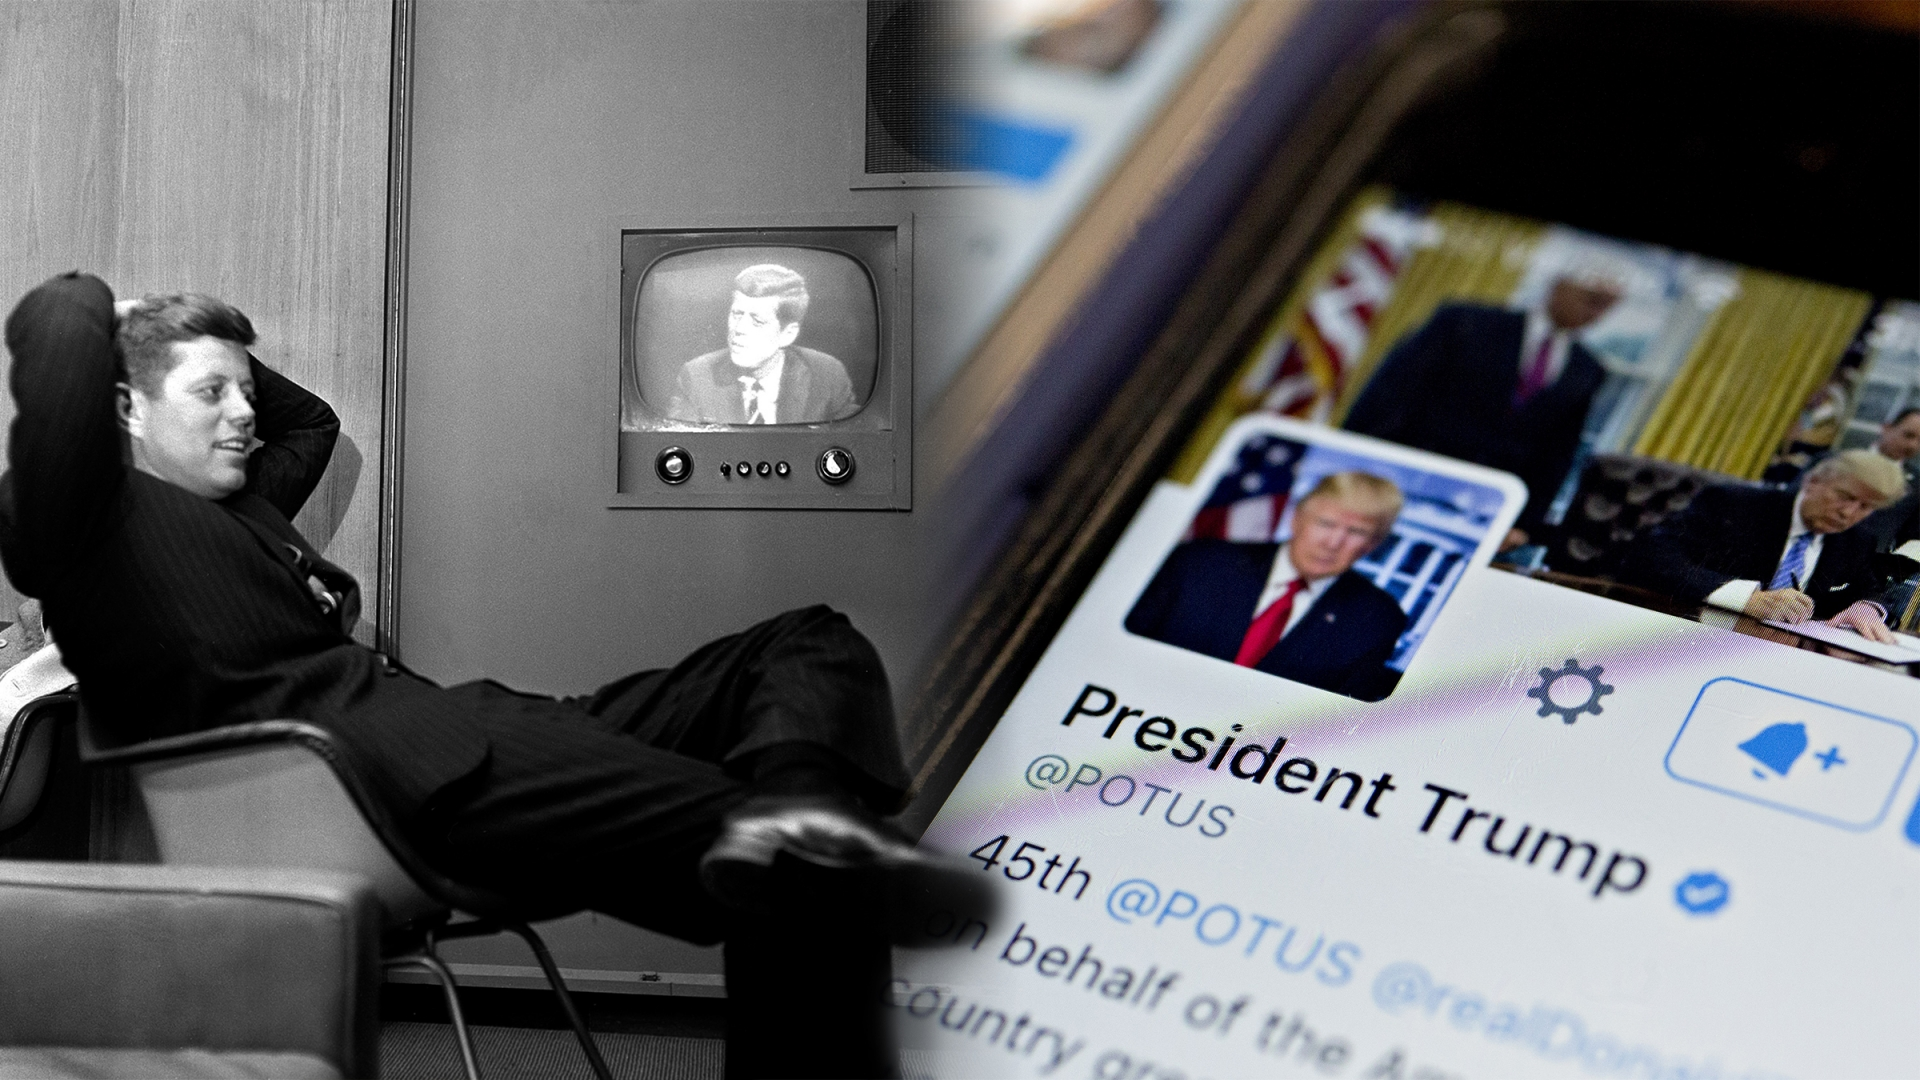 John F. Kennedy, then Democratic presidential nominee, sitting next to a playback of his televised appearance in Milwaukee for the Wisconsin presidential primary two days later. (Credit: AP Photo); The Twitter account of U.S. President Donald Trump, @POTUS. (Credit:  Andrew Harrer/Bloomberg via Getty Images)